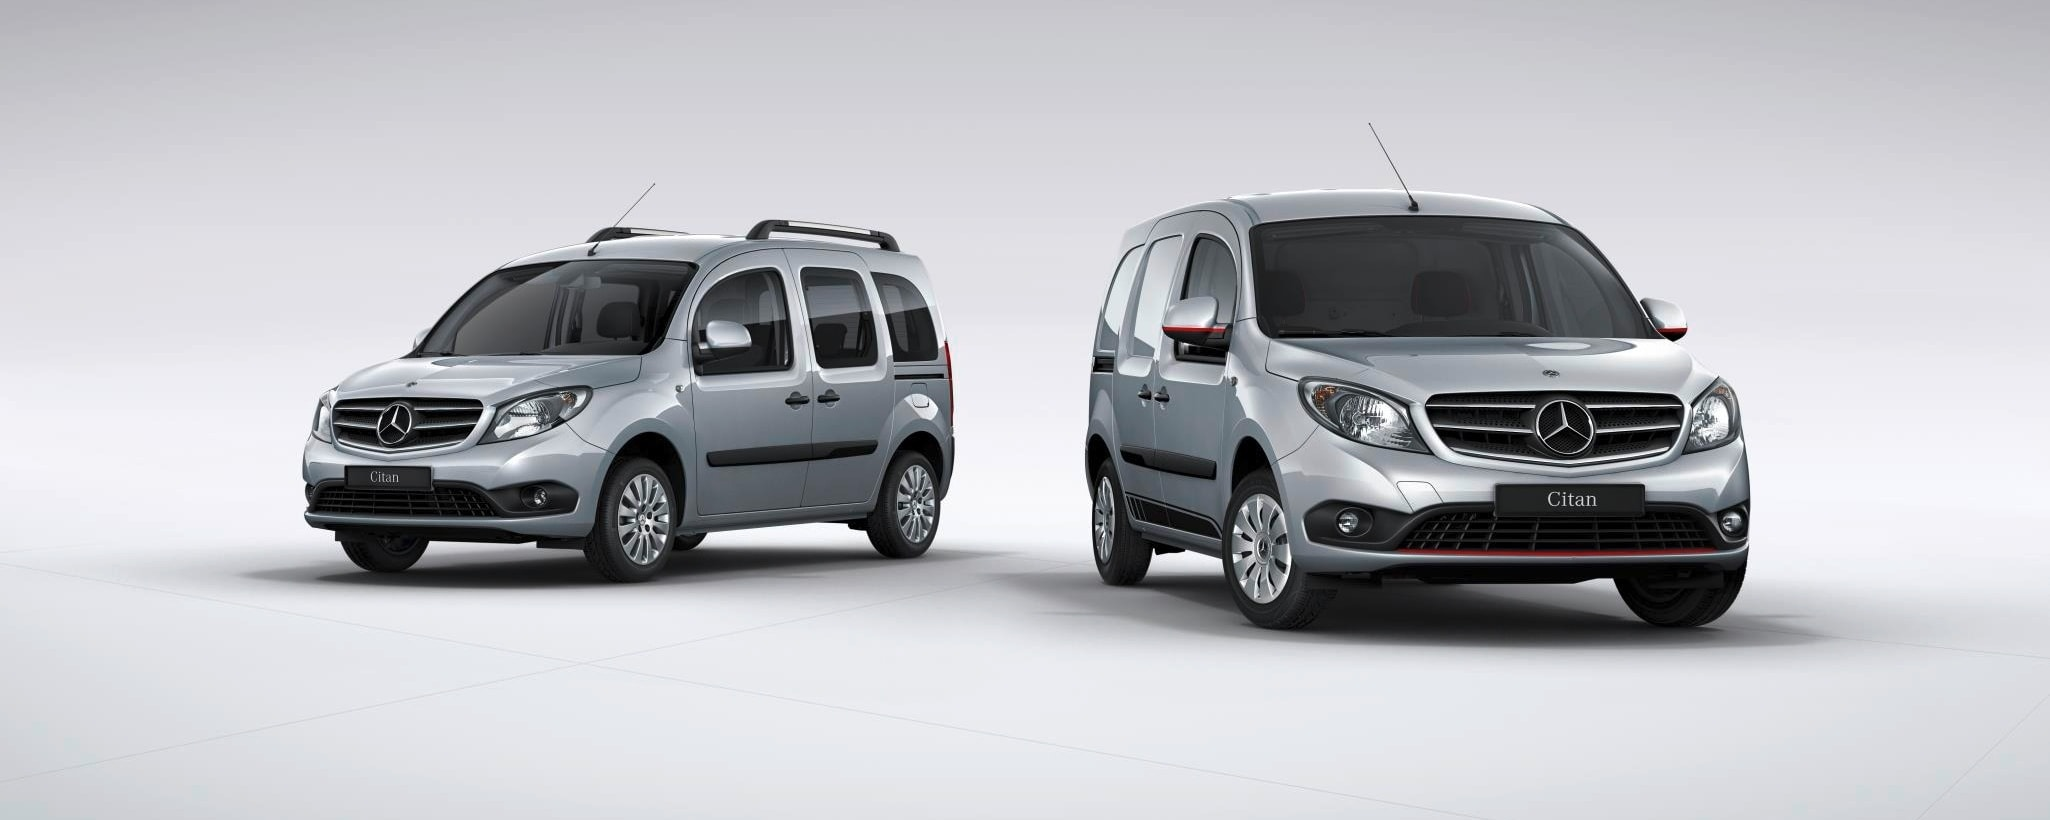 Citan Panel Van, Citan Mixto, Citan Tourer